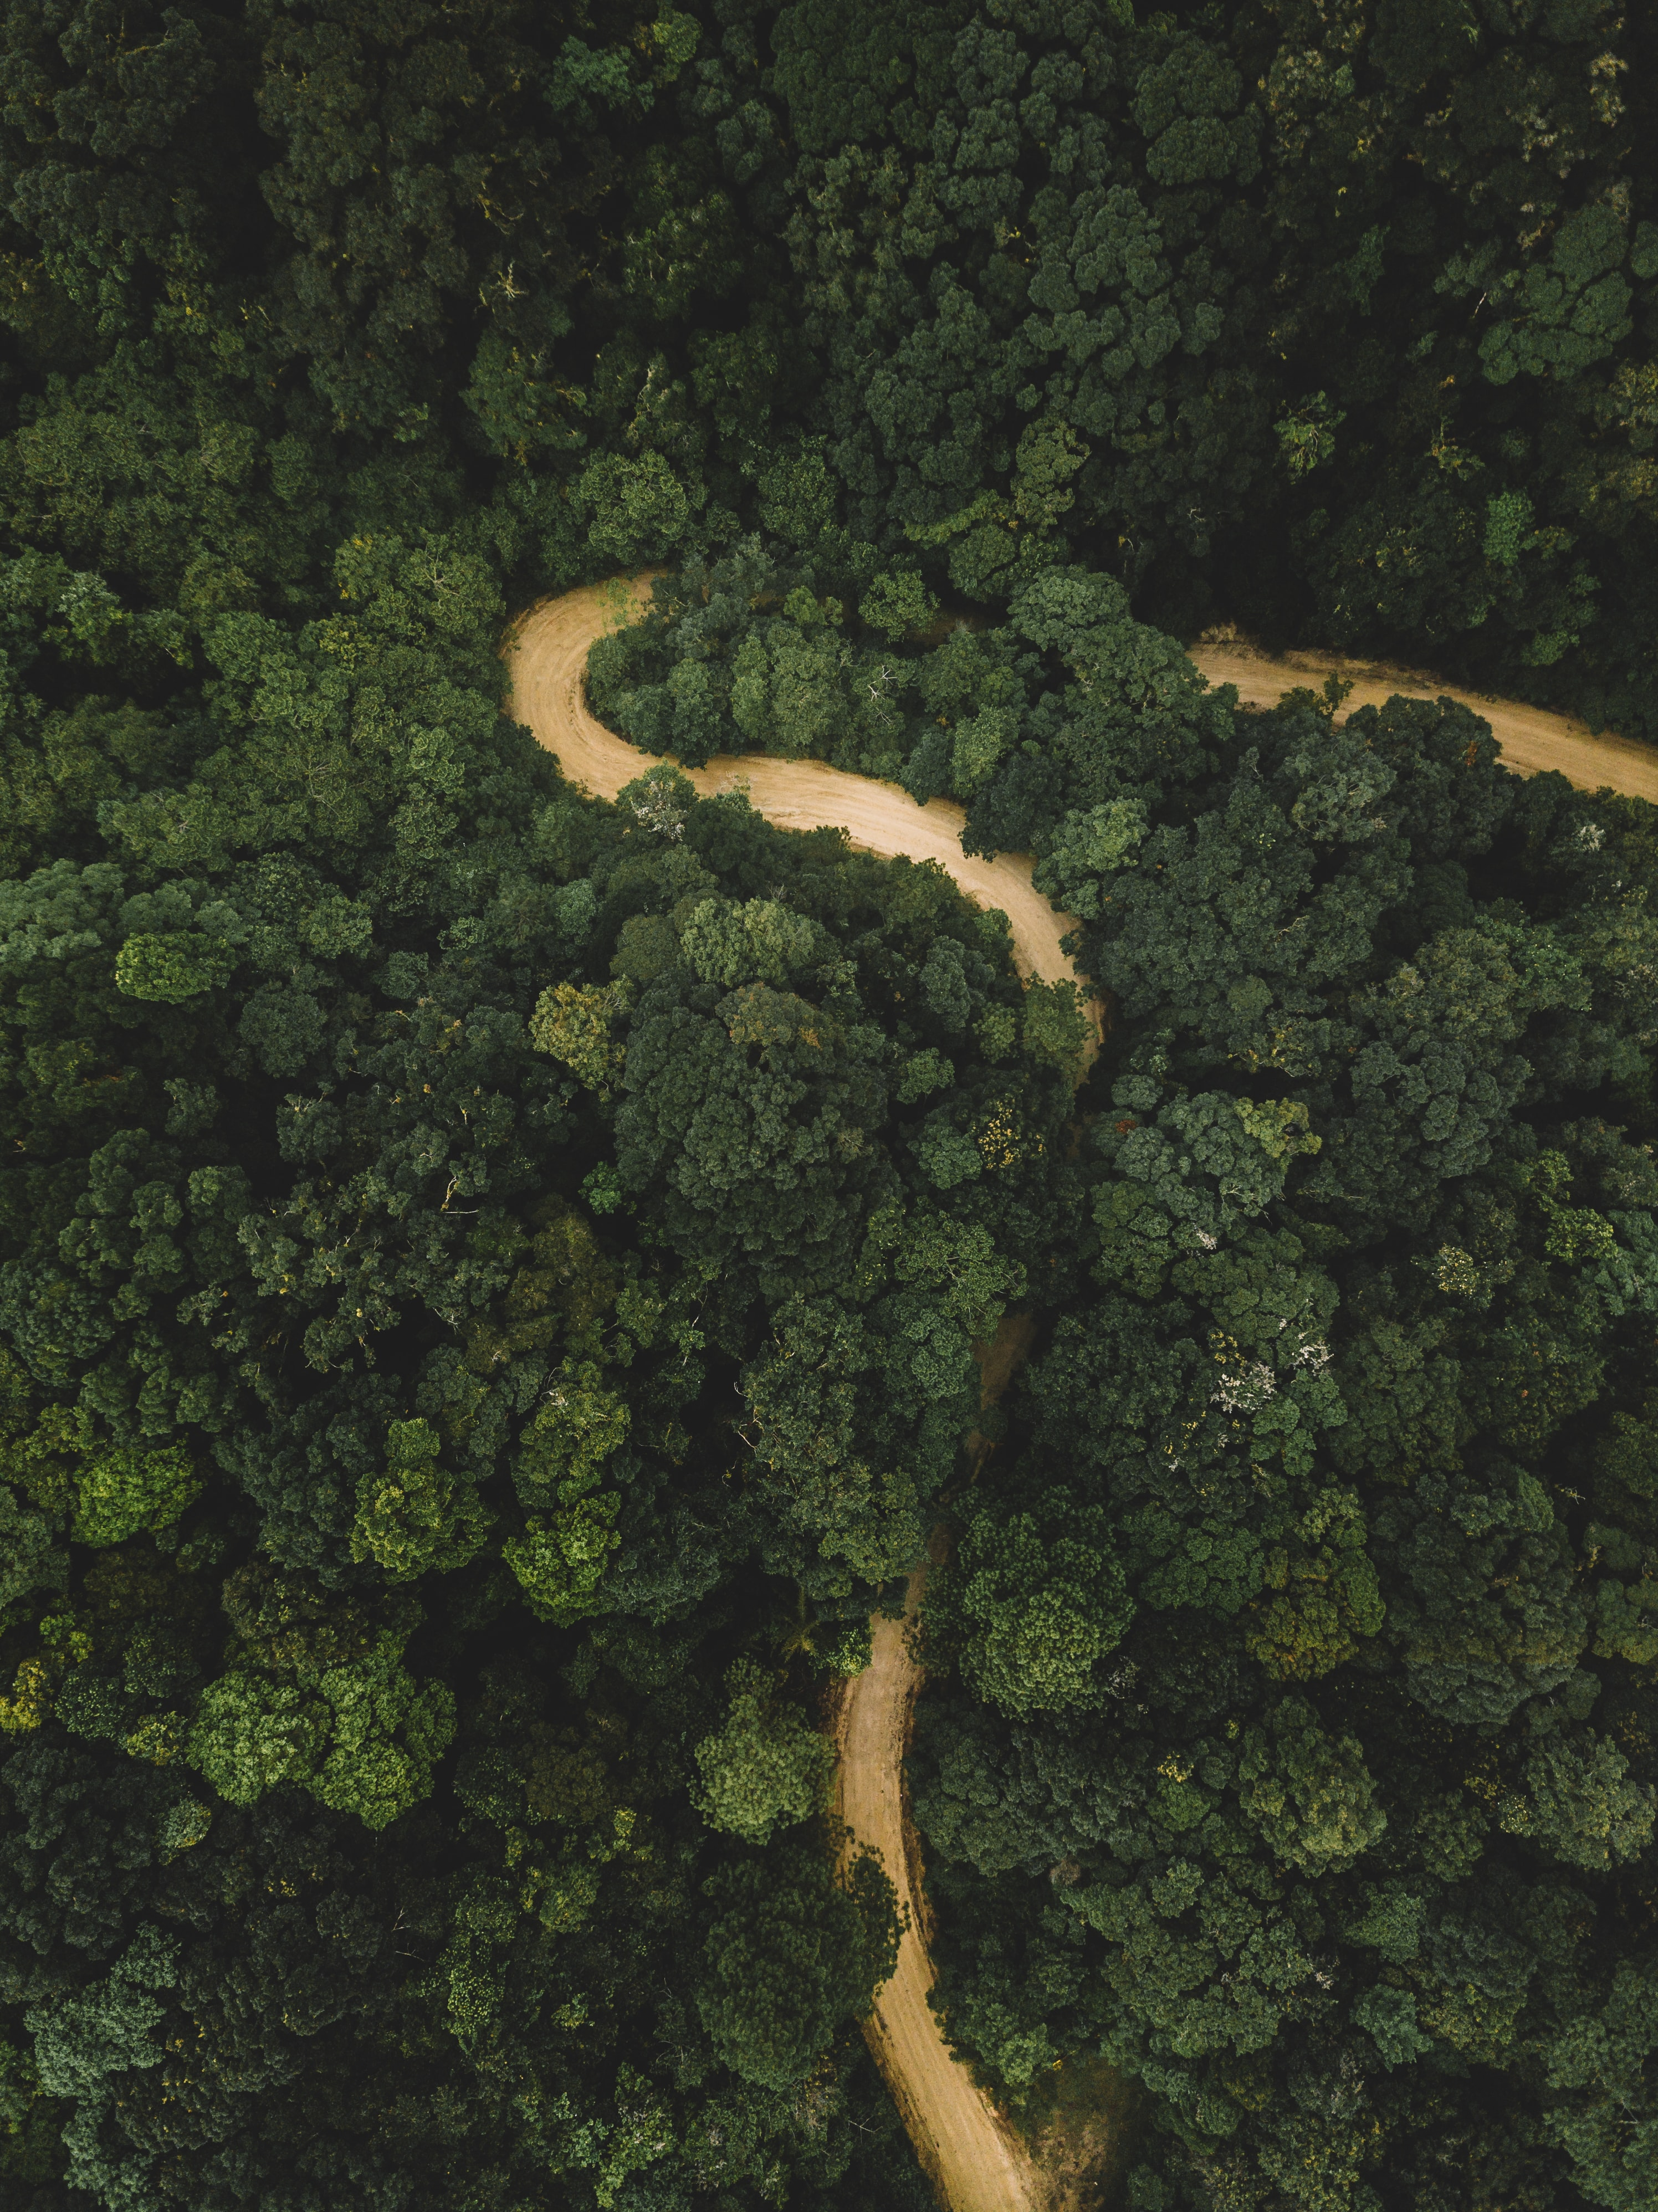 aerial photography of body of water surrounded by trees